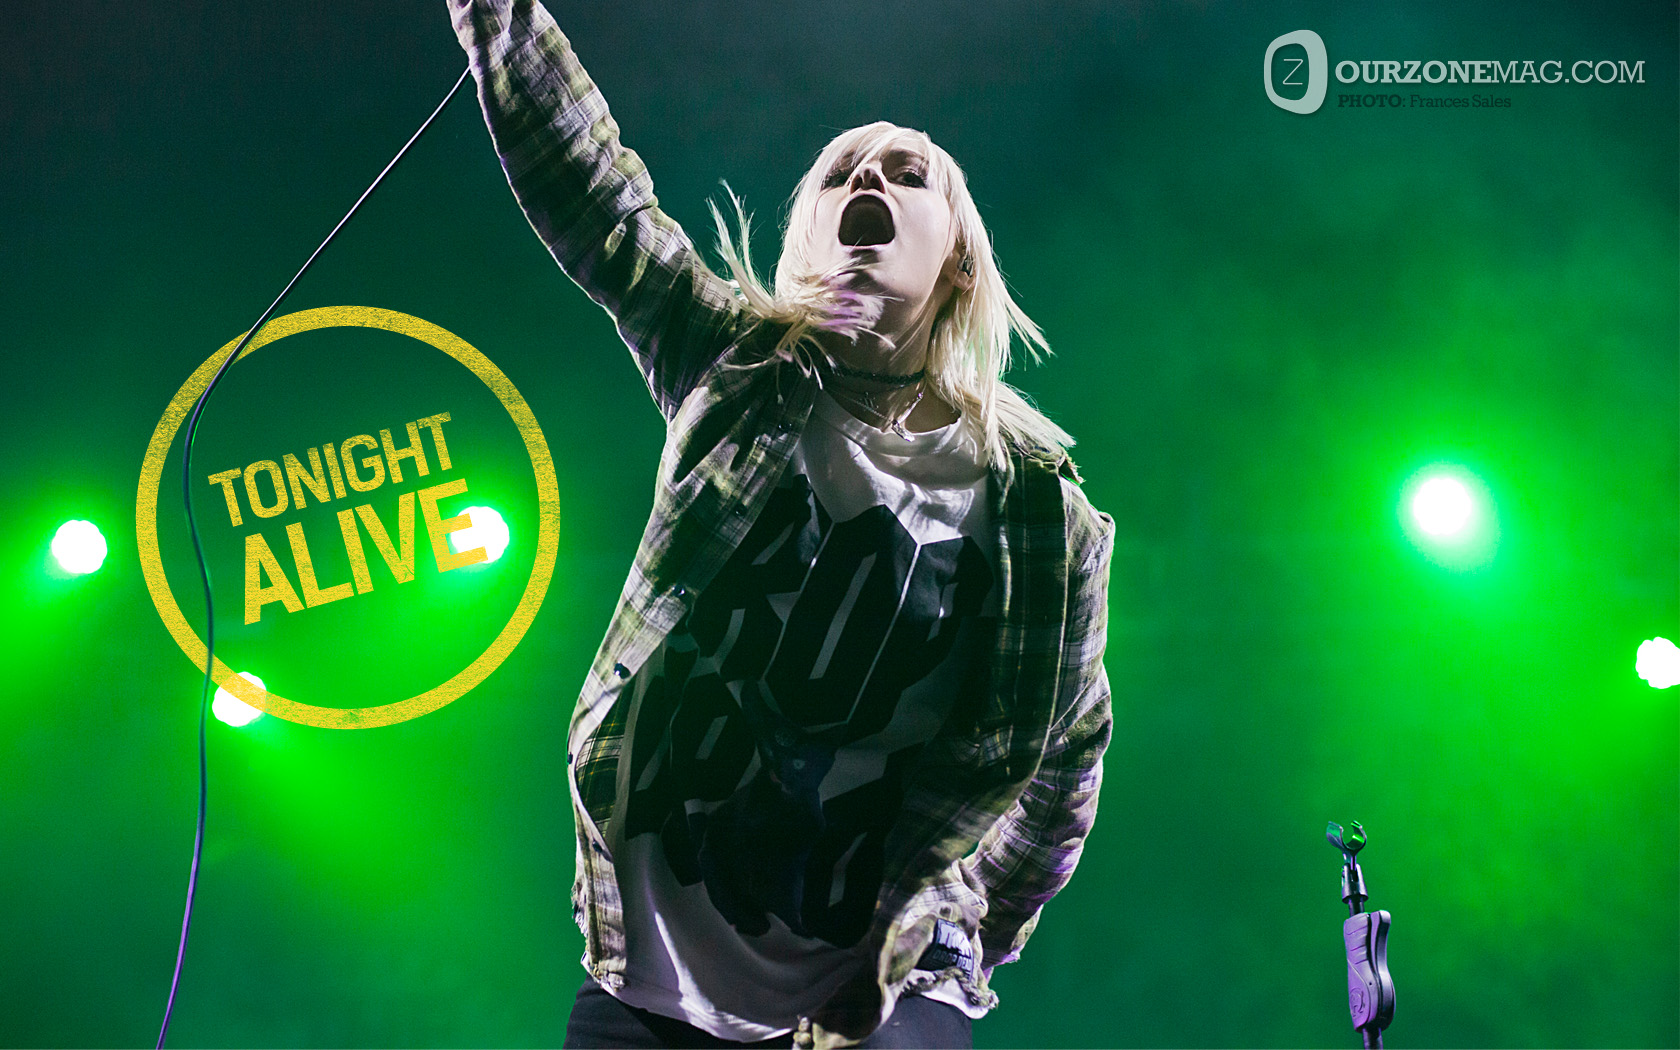 FREE DOWNLOAD Tonight Alive Wallpaper Ourzone Magazine 1680x1050